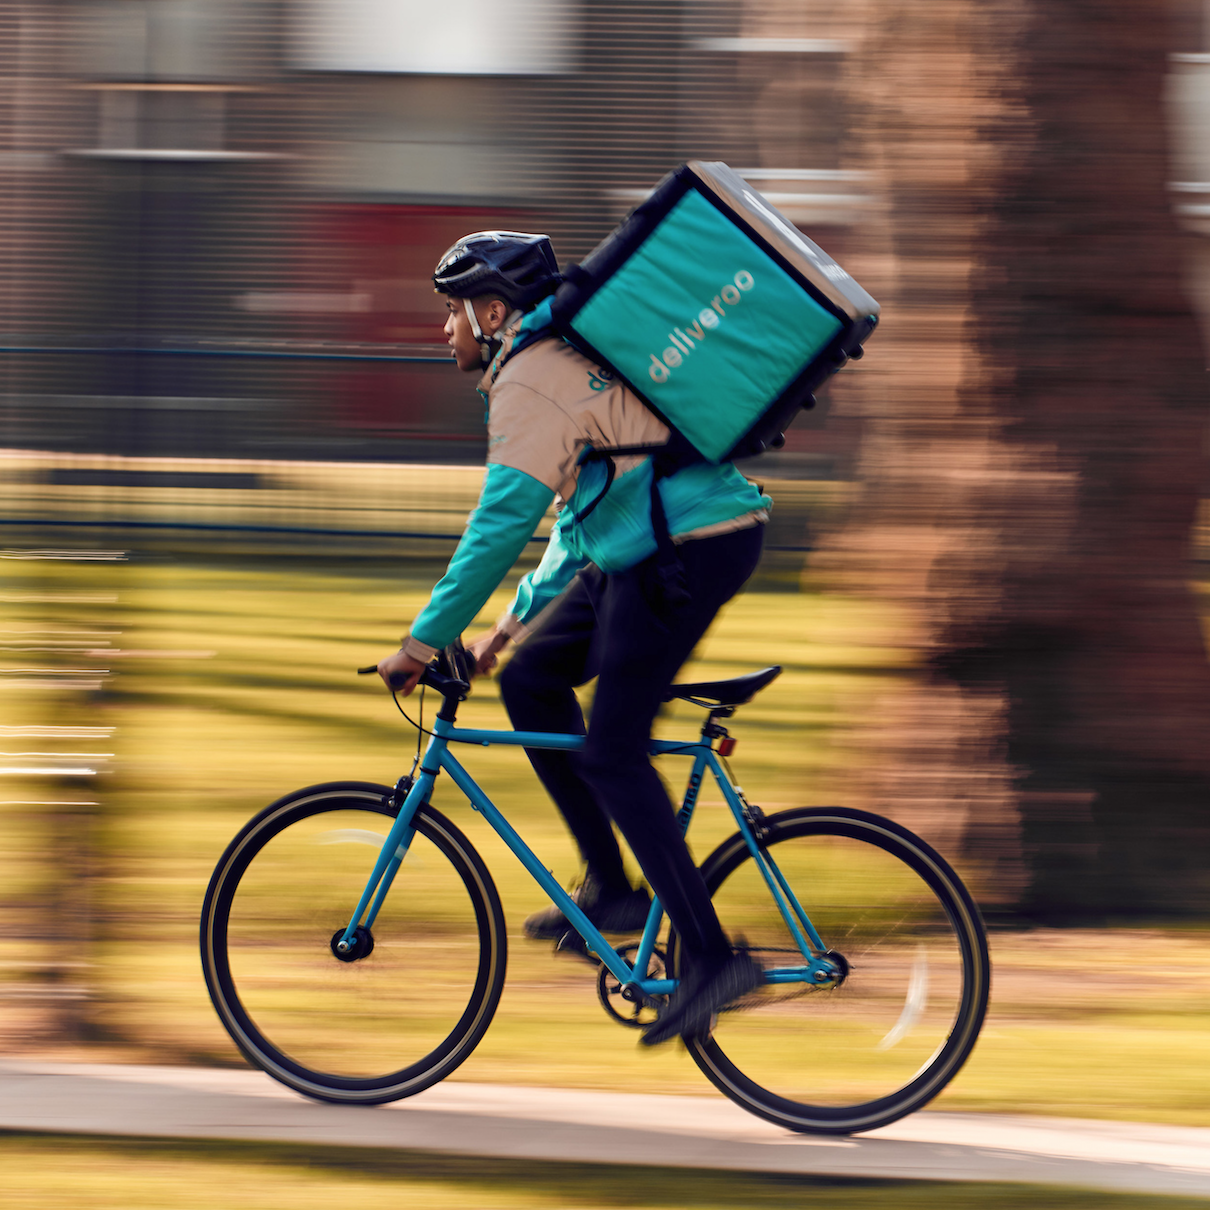 Deliveroo Jumps on Subscription Bandwagon